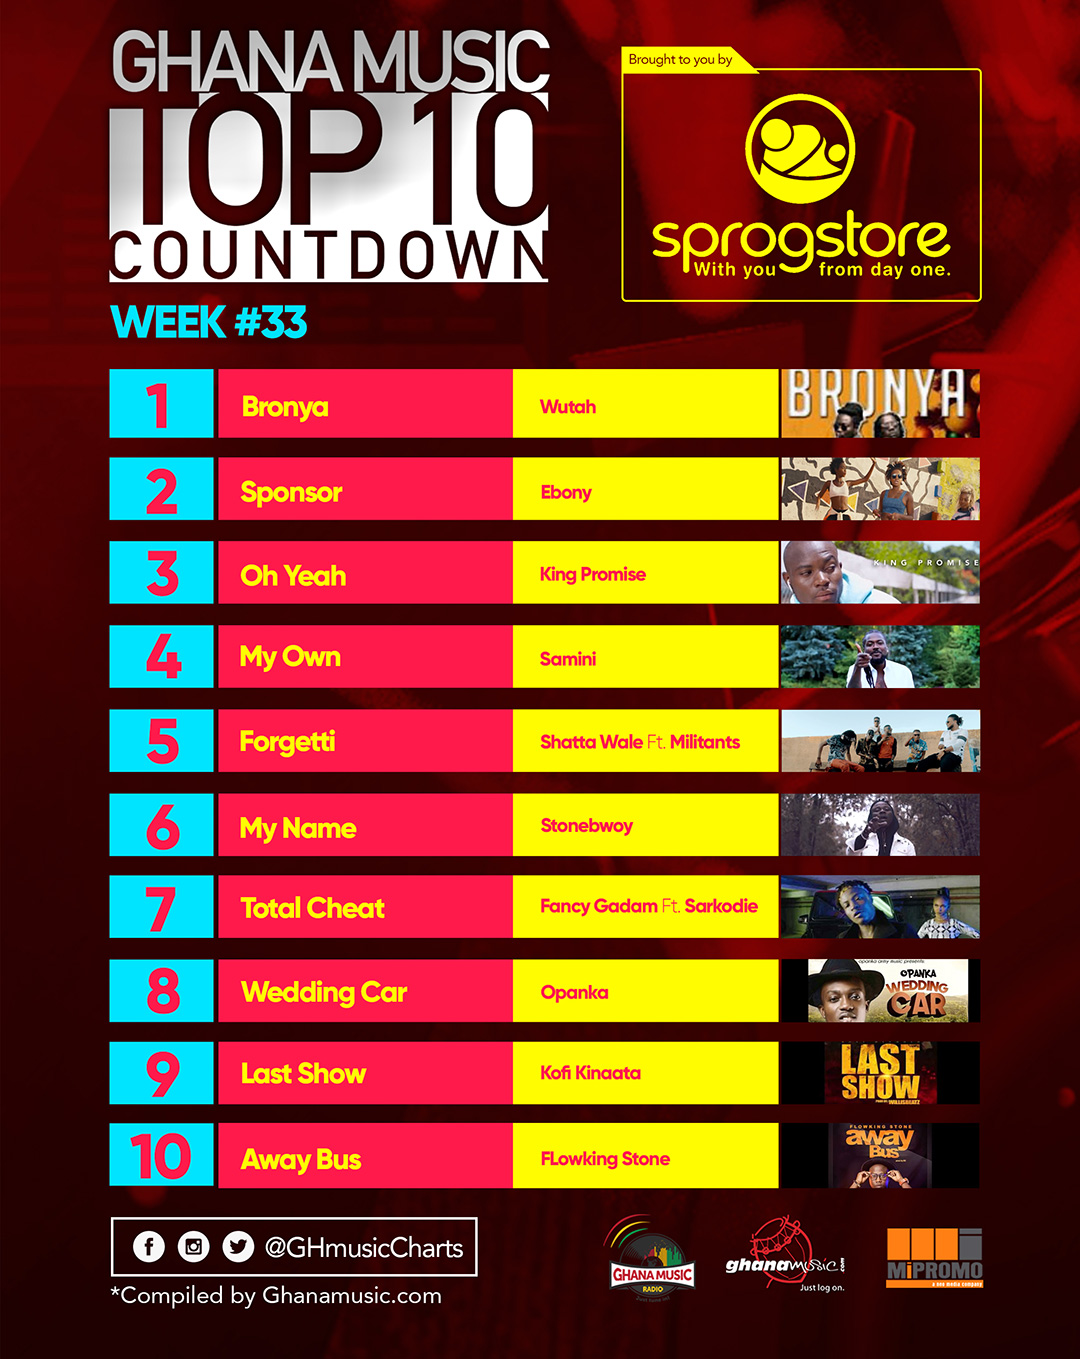 Week #33: Week ending Saturday, August 19th, 2017. Ghana Music Top 10 Countdown.